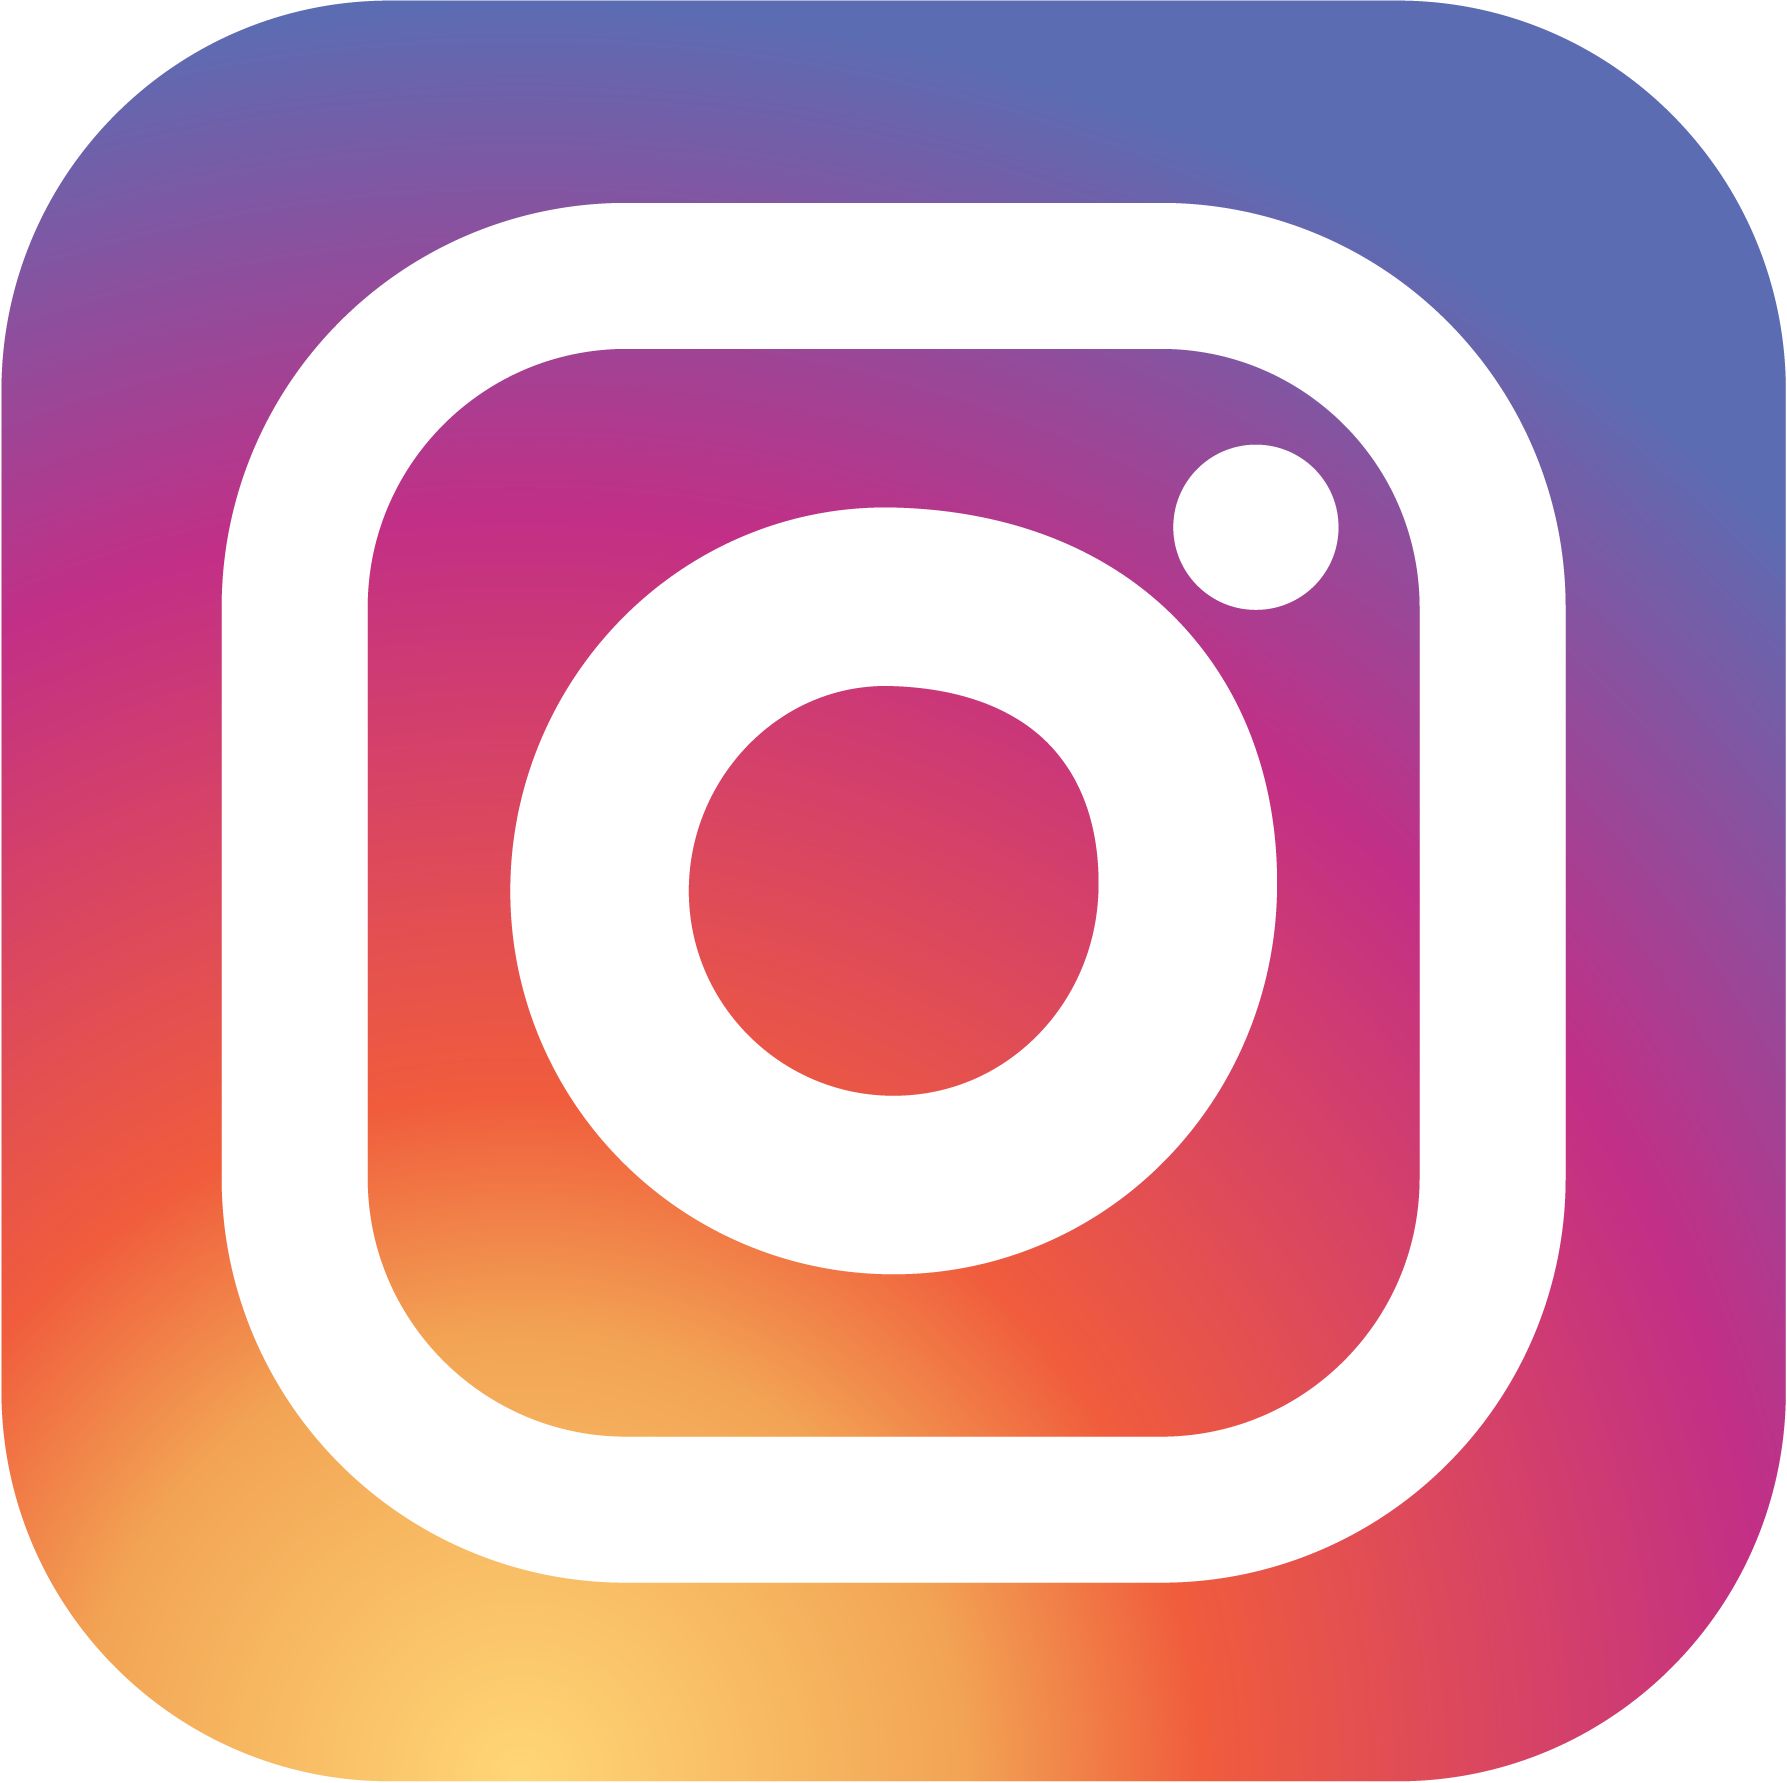 logo instagram a telecharger | Logo instagram, Photo de logo, Logo appareil  photo